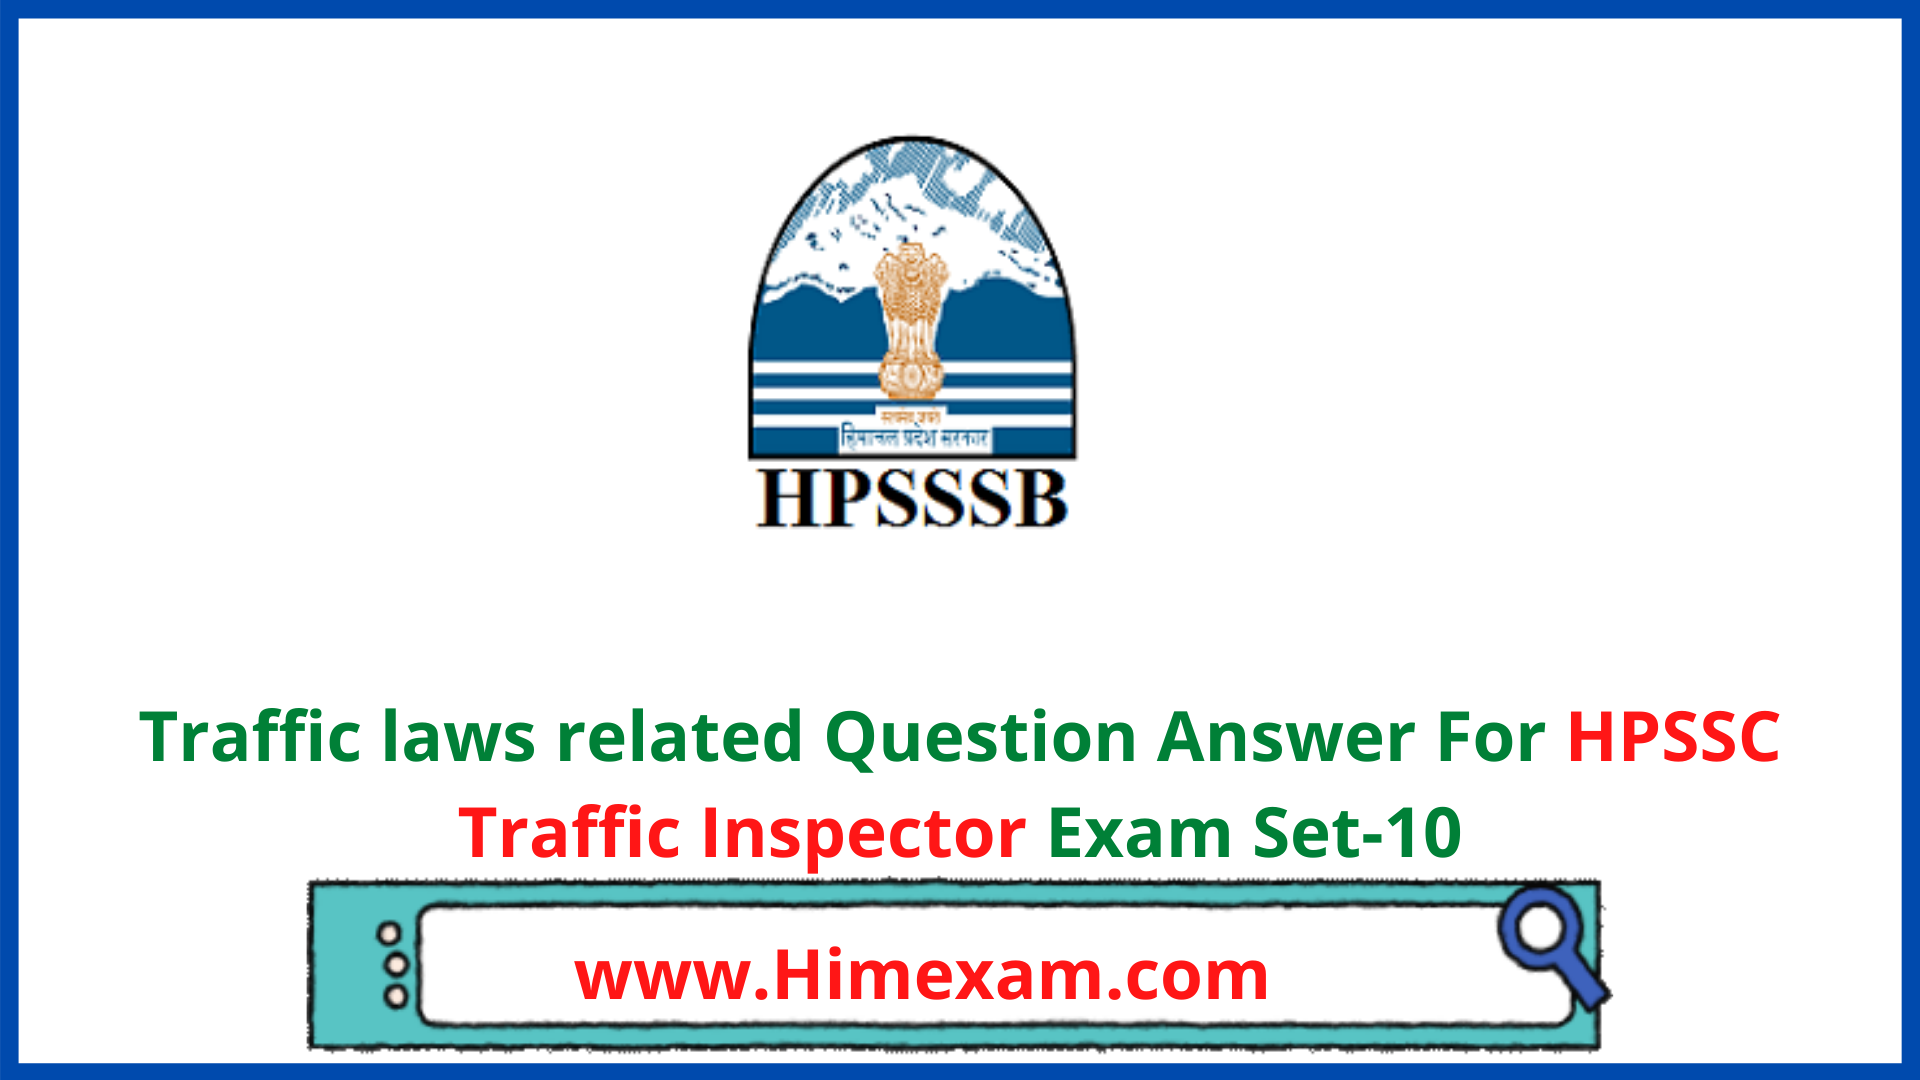 Traffic laws related Question Answer For HPSSC Traffic Inspector Exam Set-10